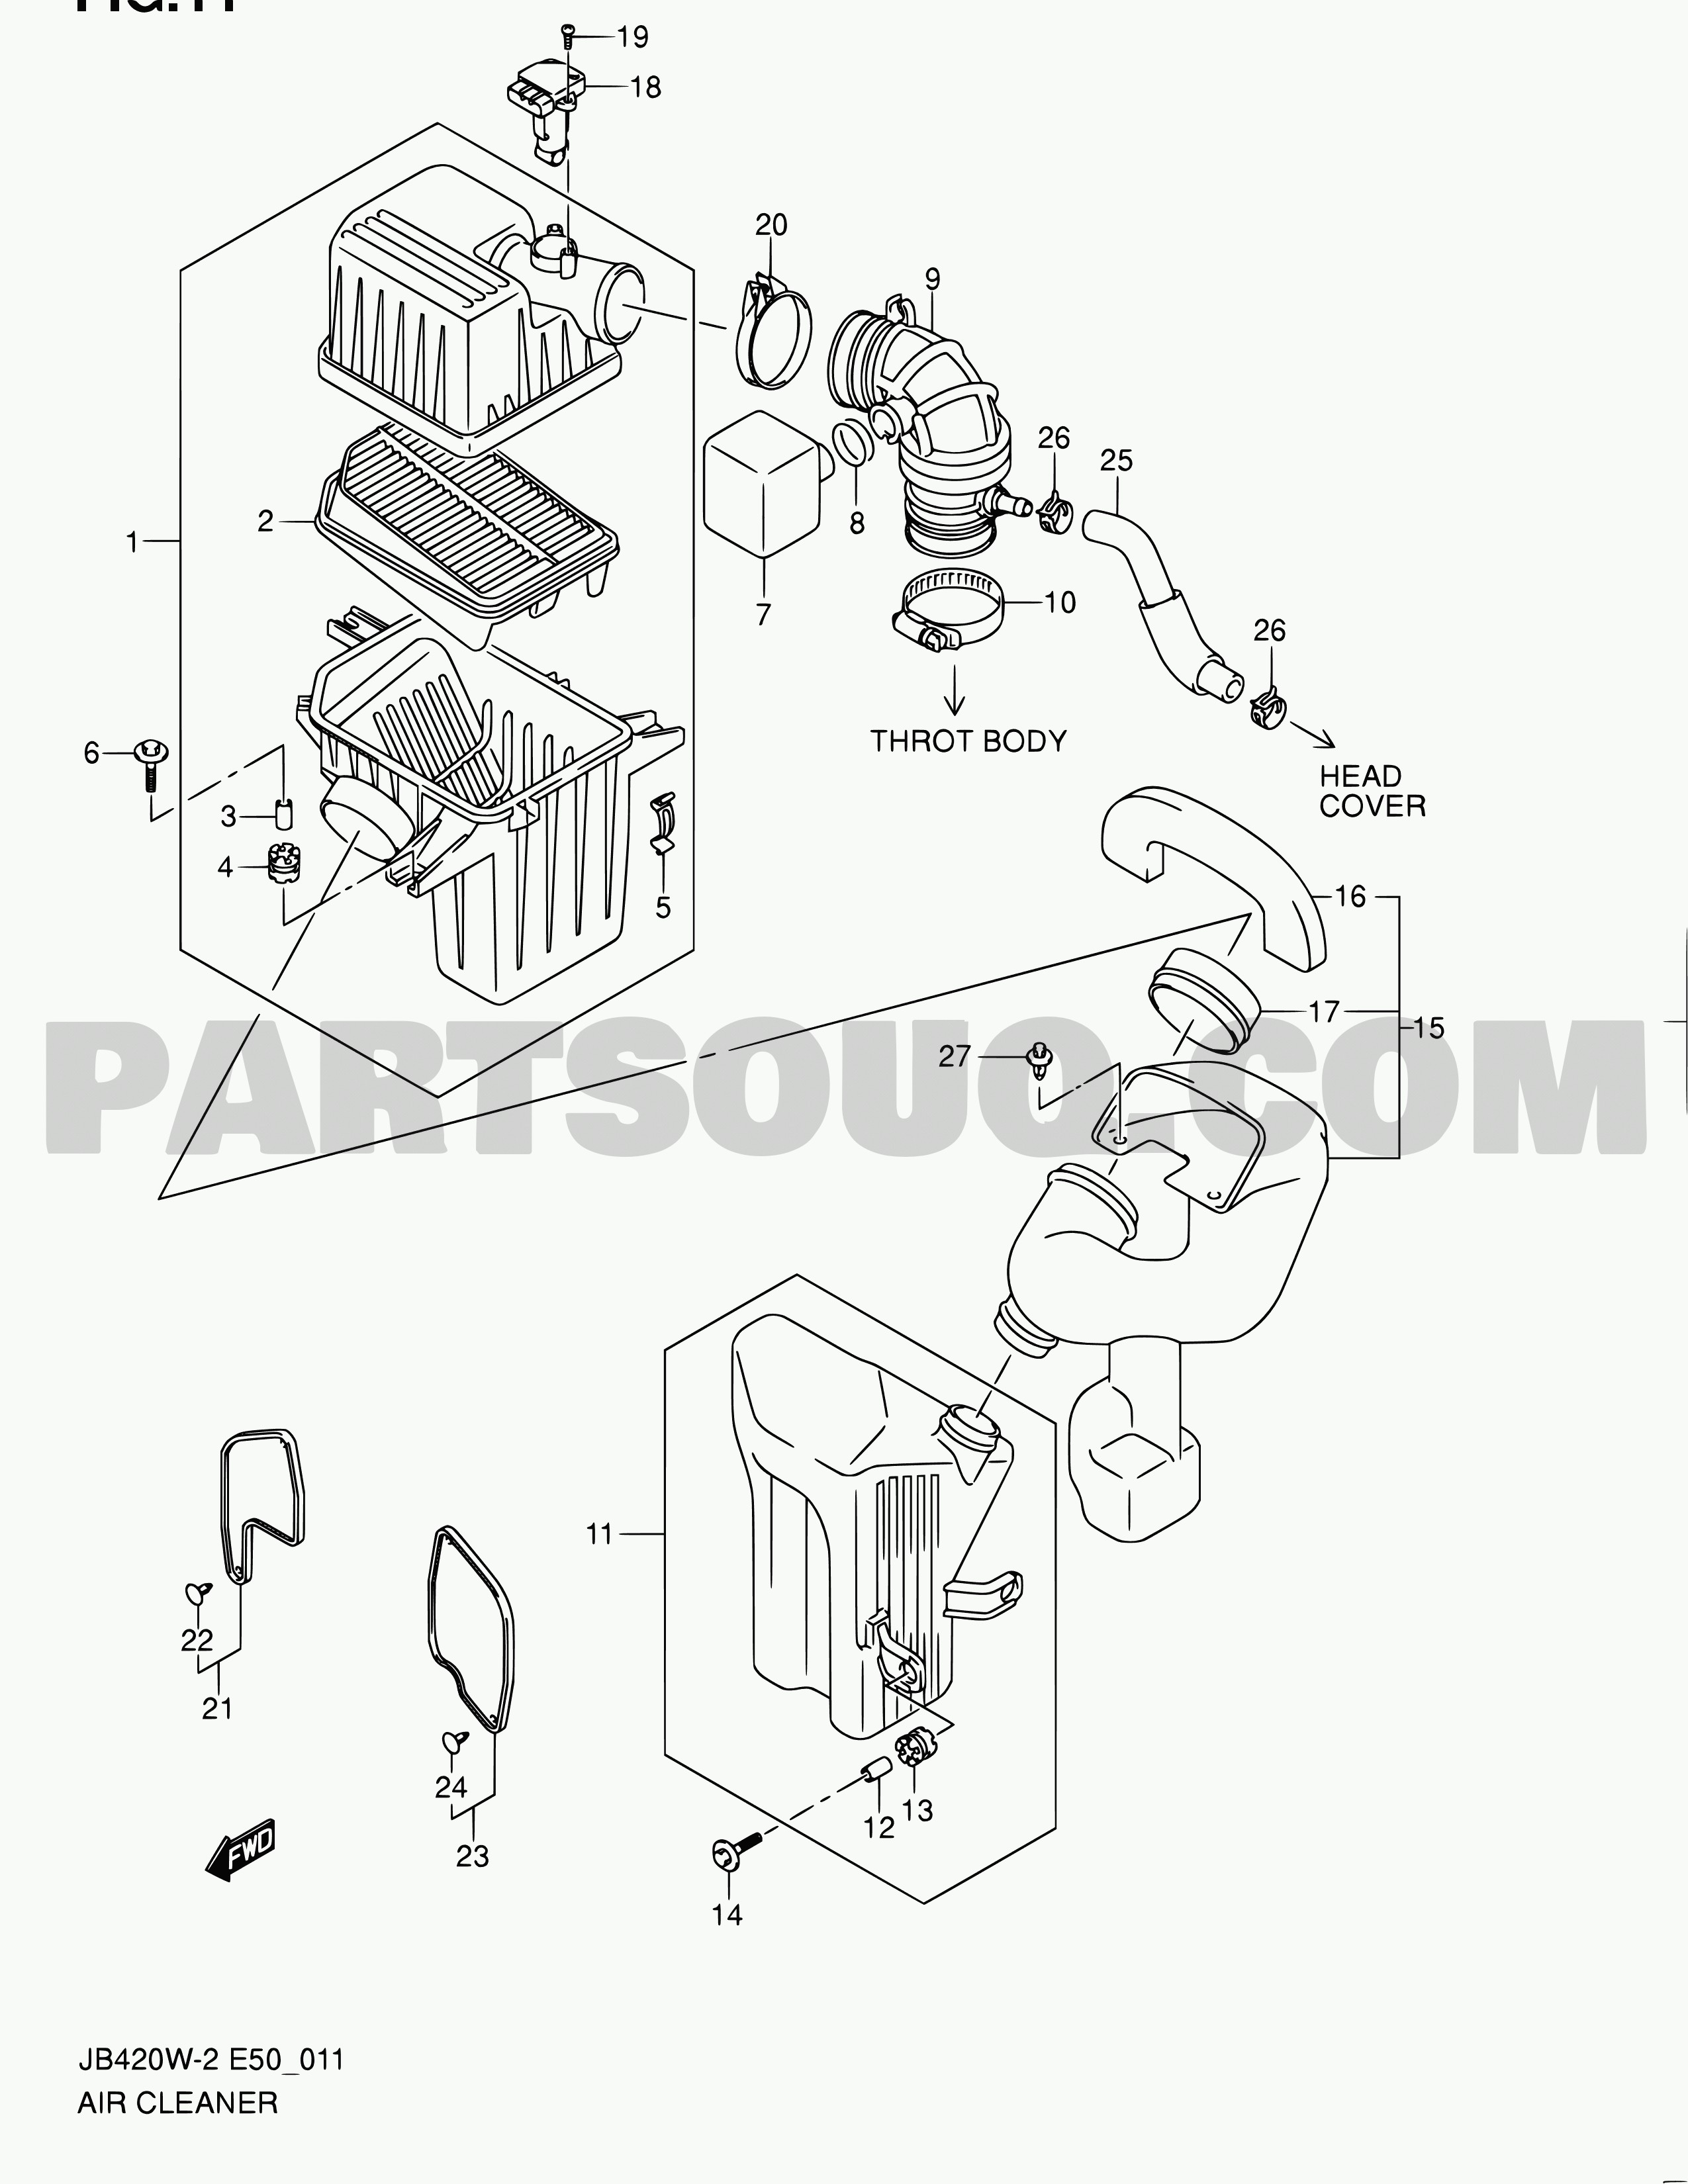 2005 Suzuki Forenza Engine Diagram Guide And Troubleshooting Of Alternator Wiring For 2004 Diagrams Automotive Detailed Rh 7 6 Ocotillo Paysage Com